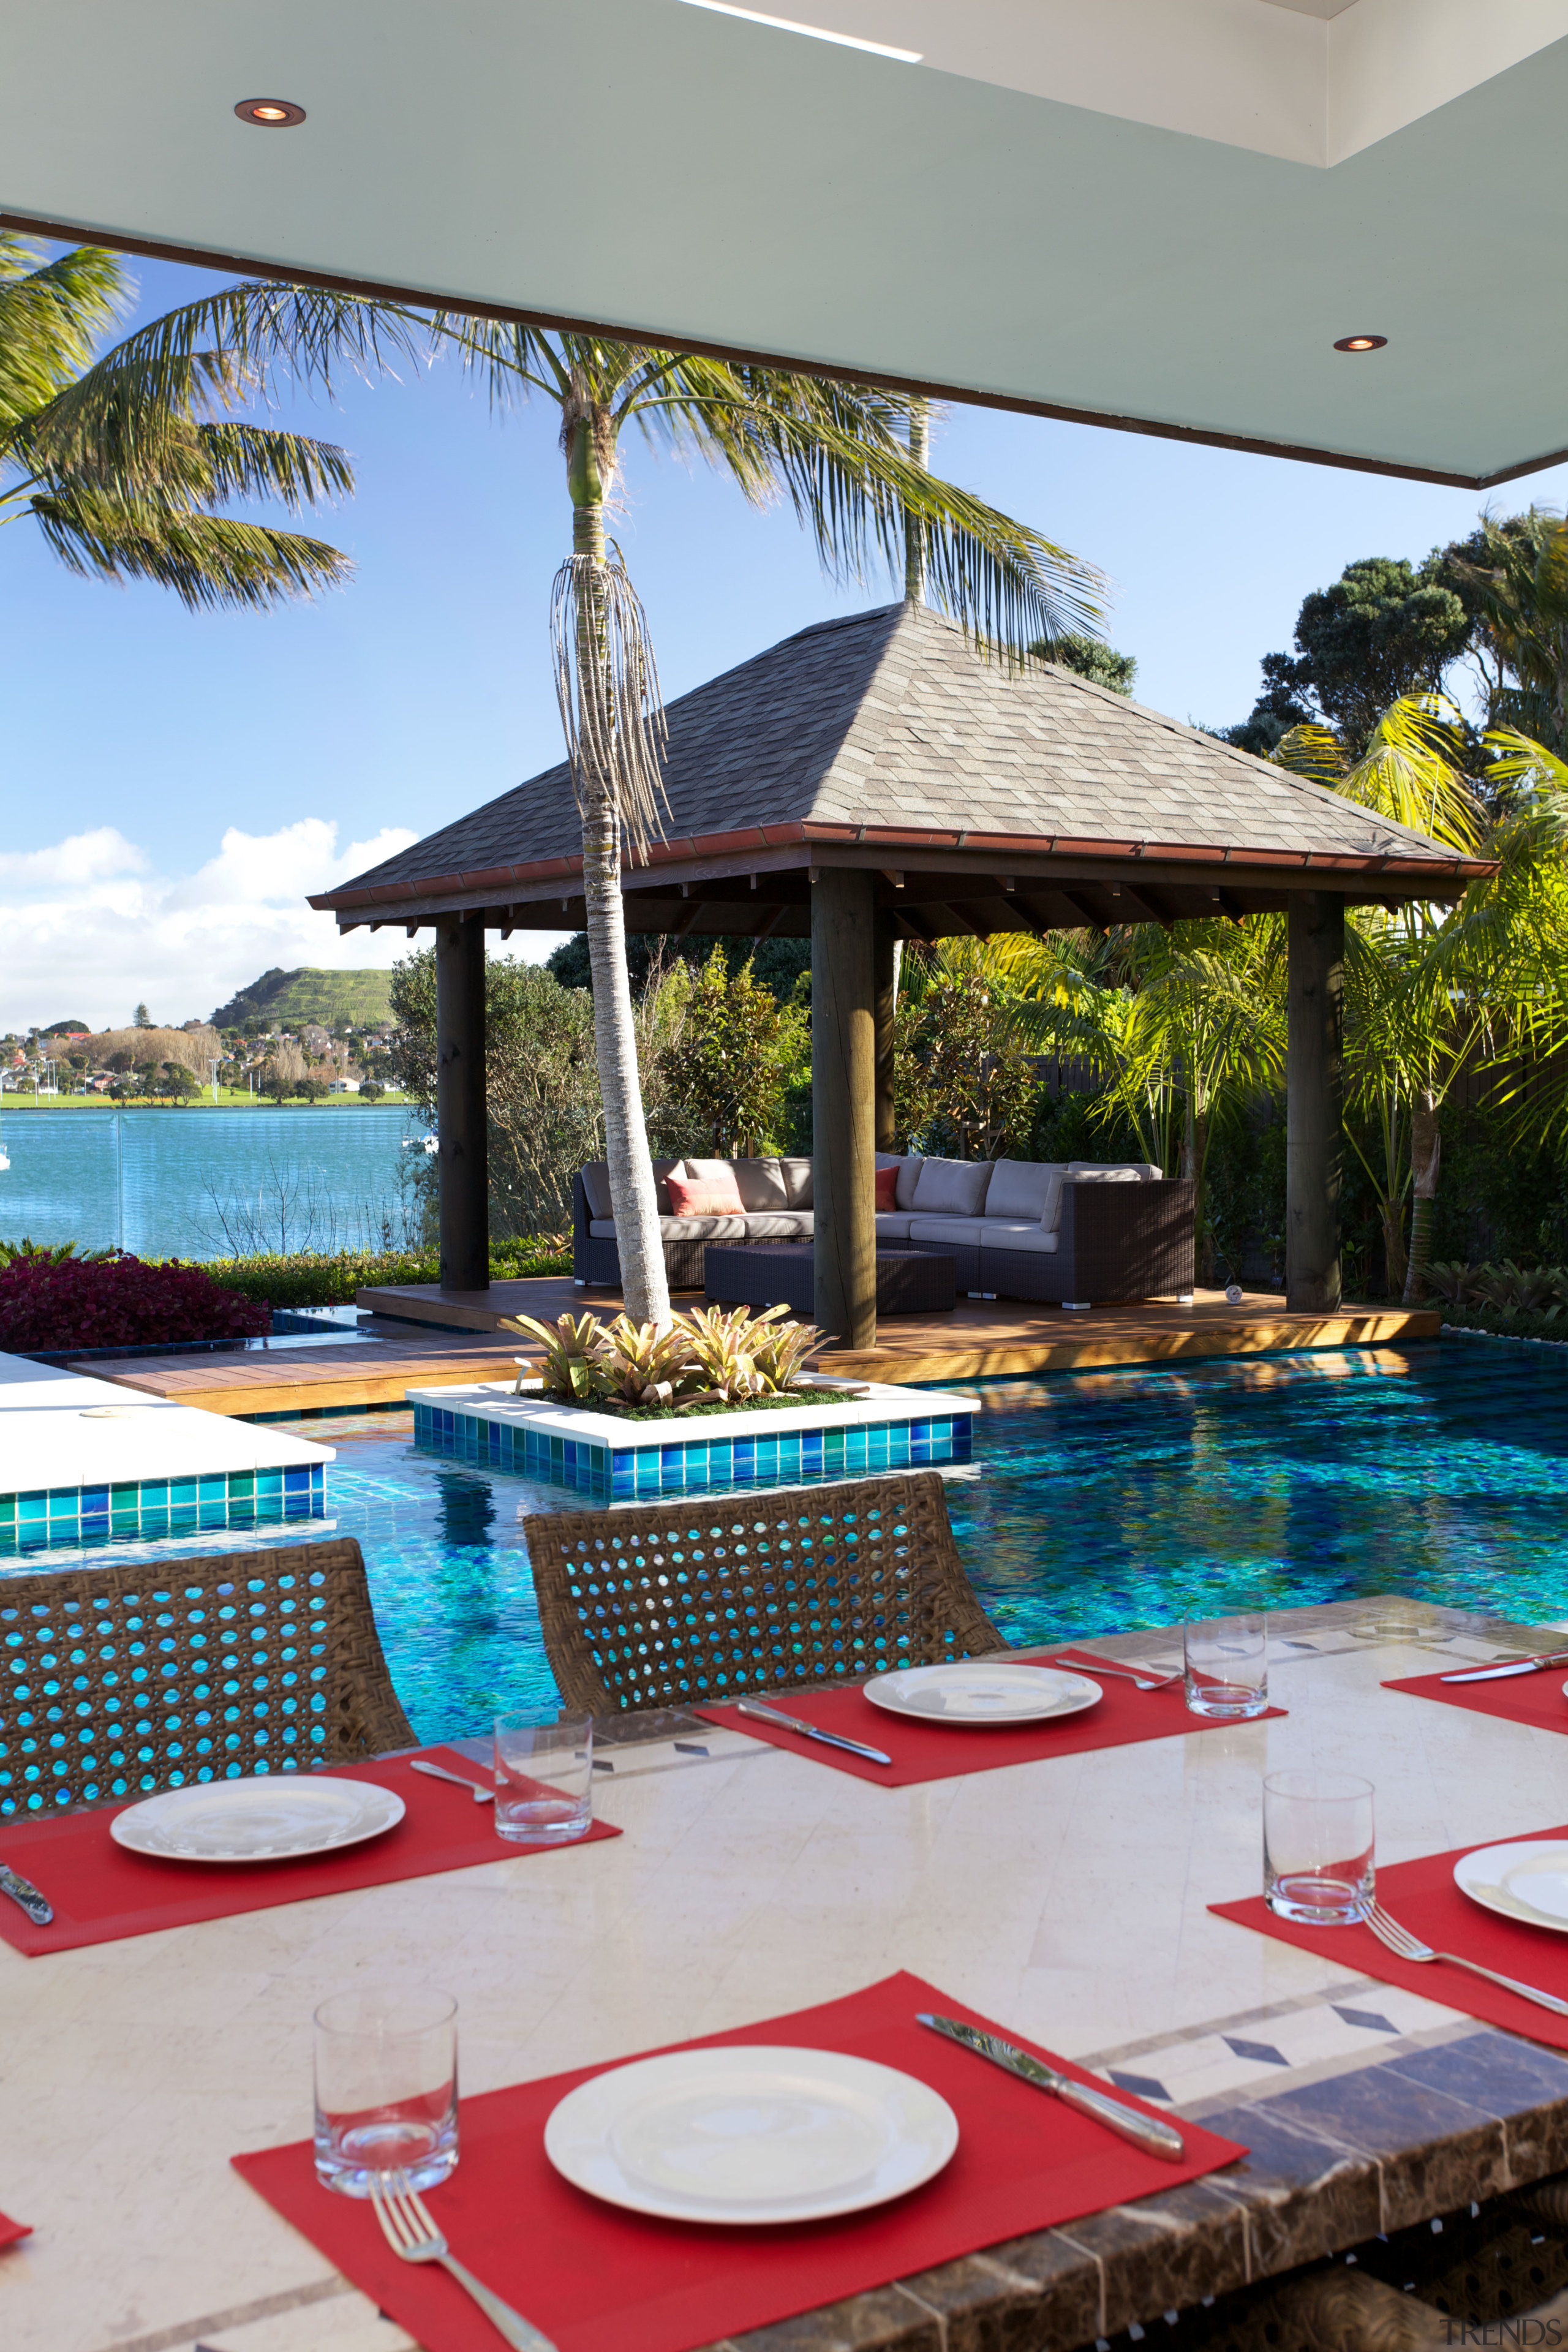 Multi-coloured pool tiles connect to the view and leisure, outdoor structure, property, real estate, resort, swimming pool, table, vacation, villa, gray